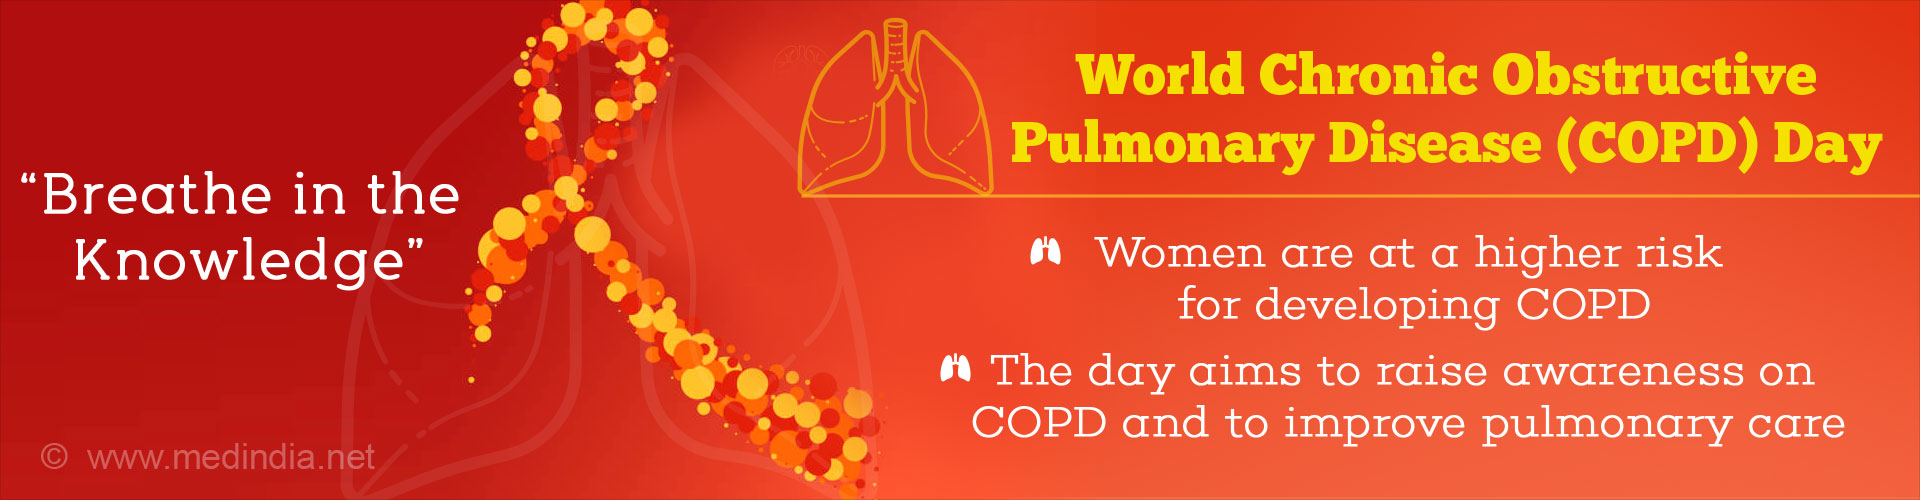 World COPD Day - 'Breathe in the Knowledge'